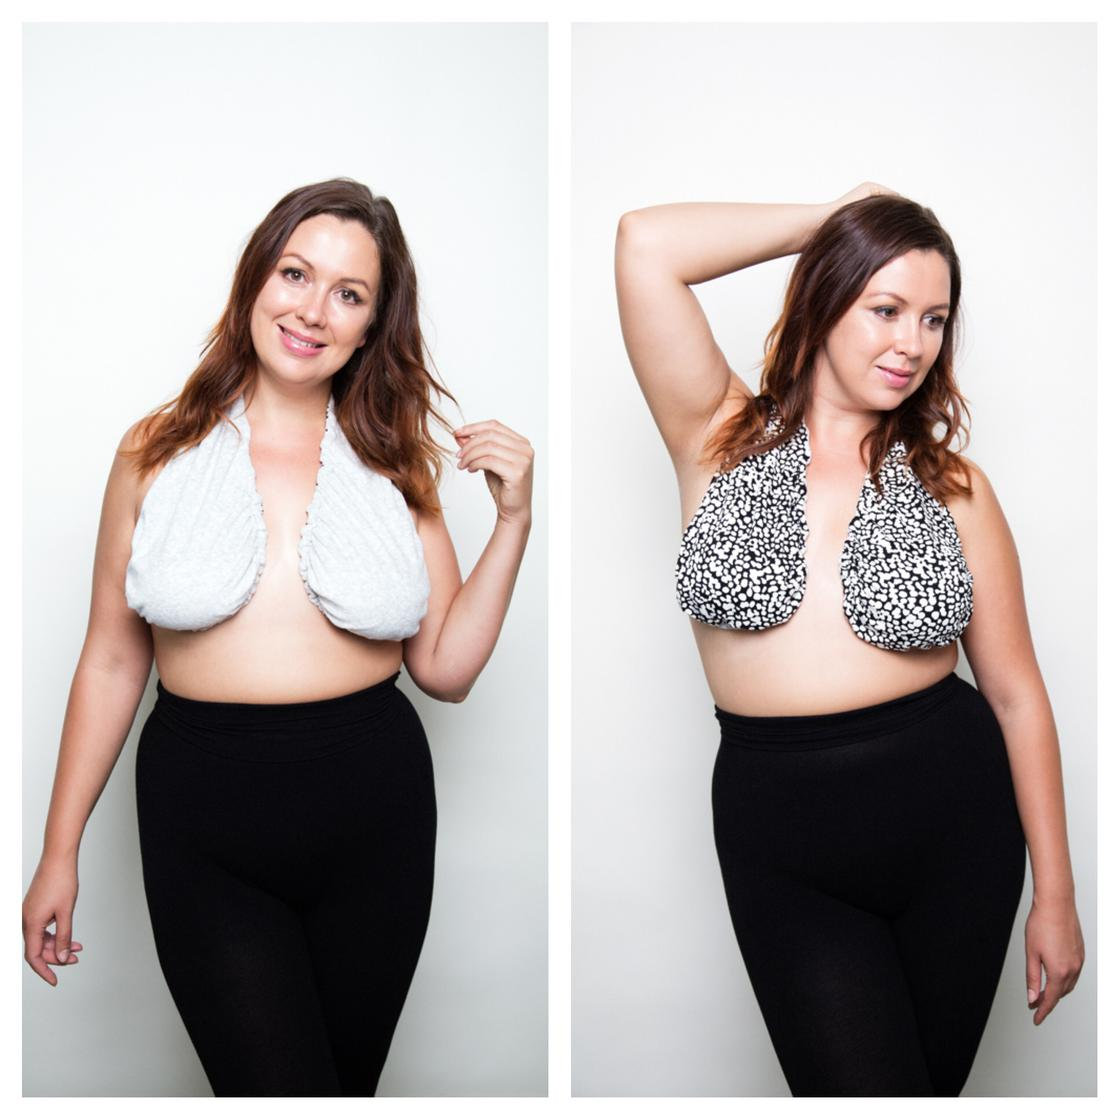 Ta-Ta Towels – An innovative bra designed to fight the heat!